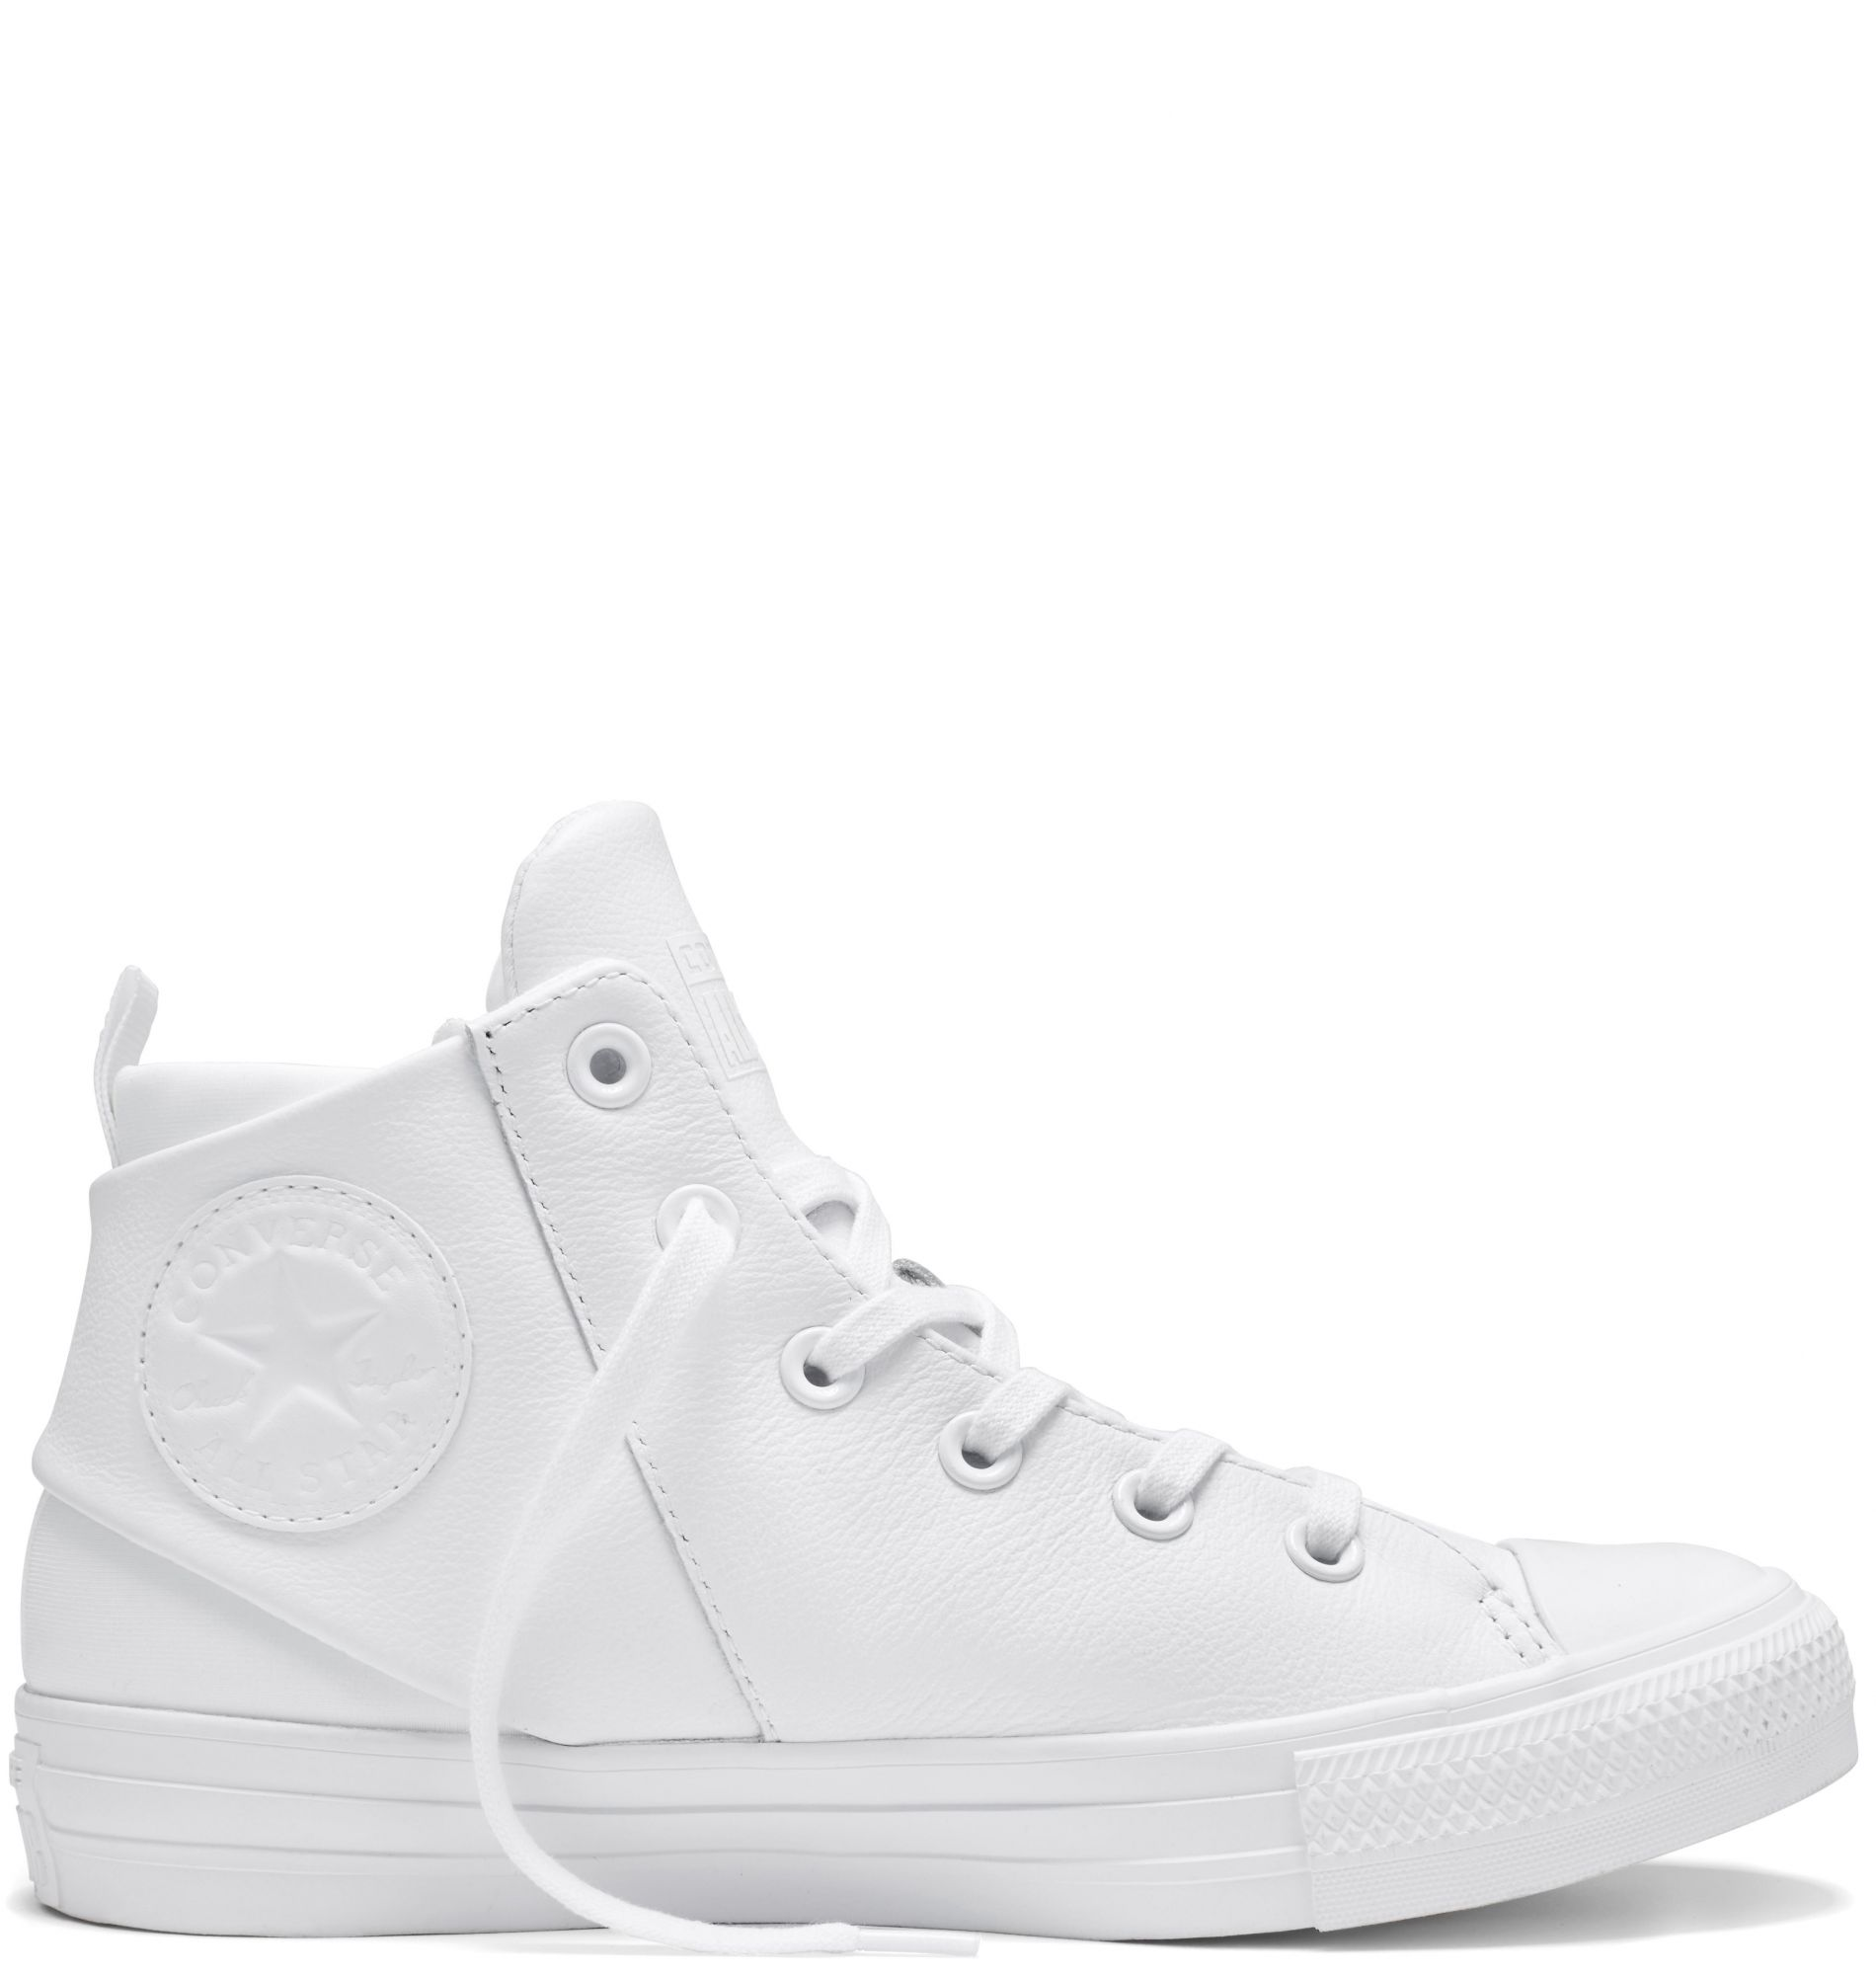 Converse Chuck Taylor All Star Sloane